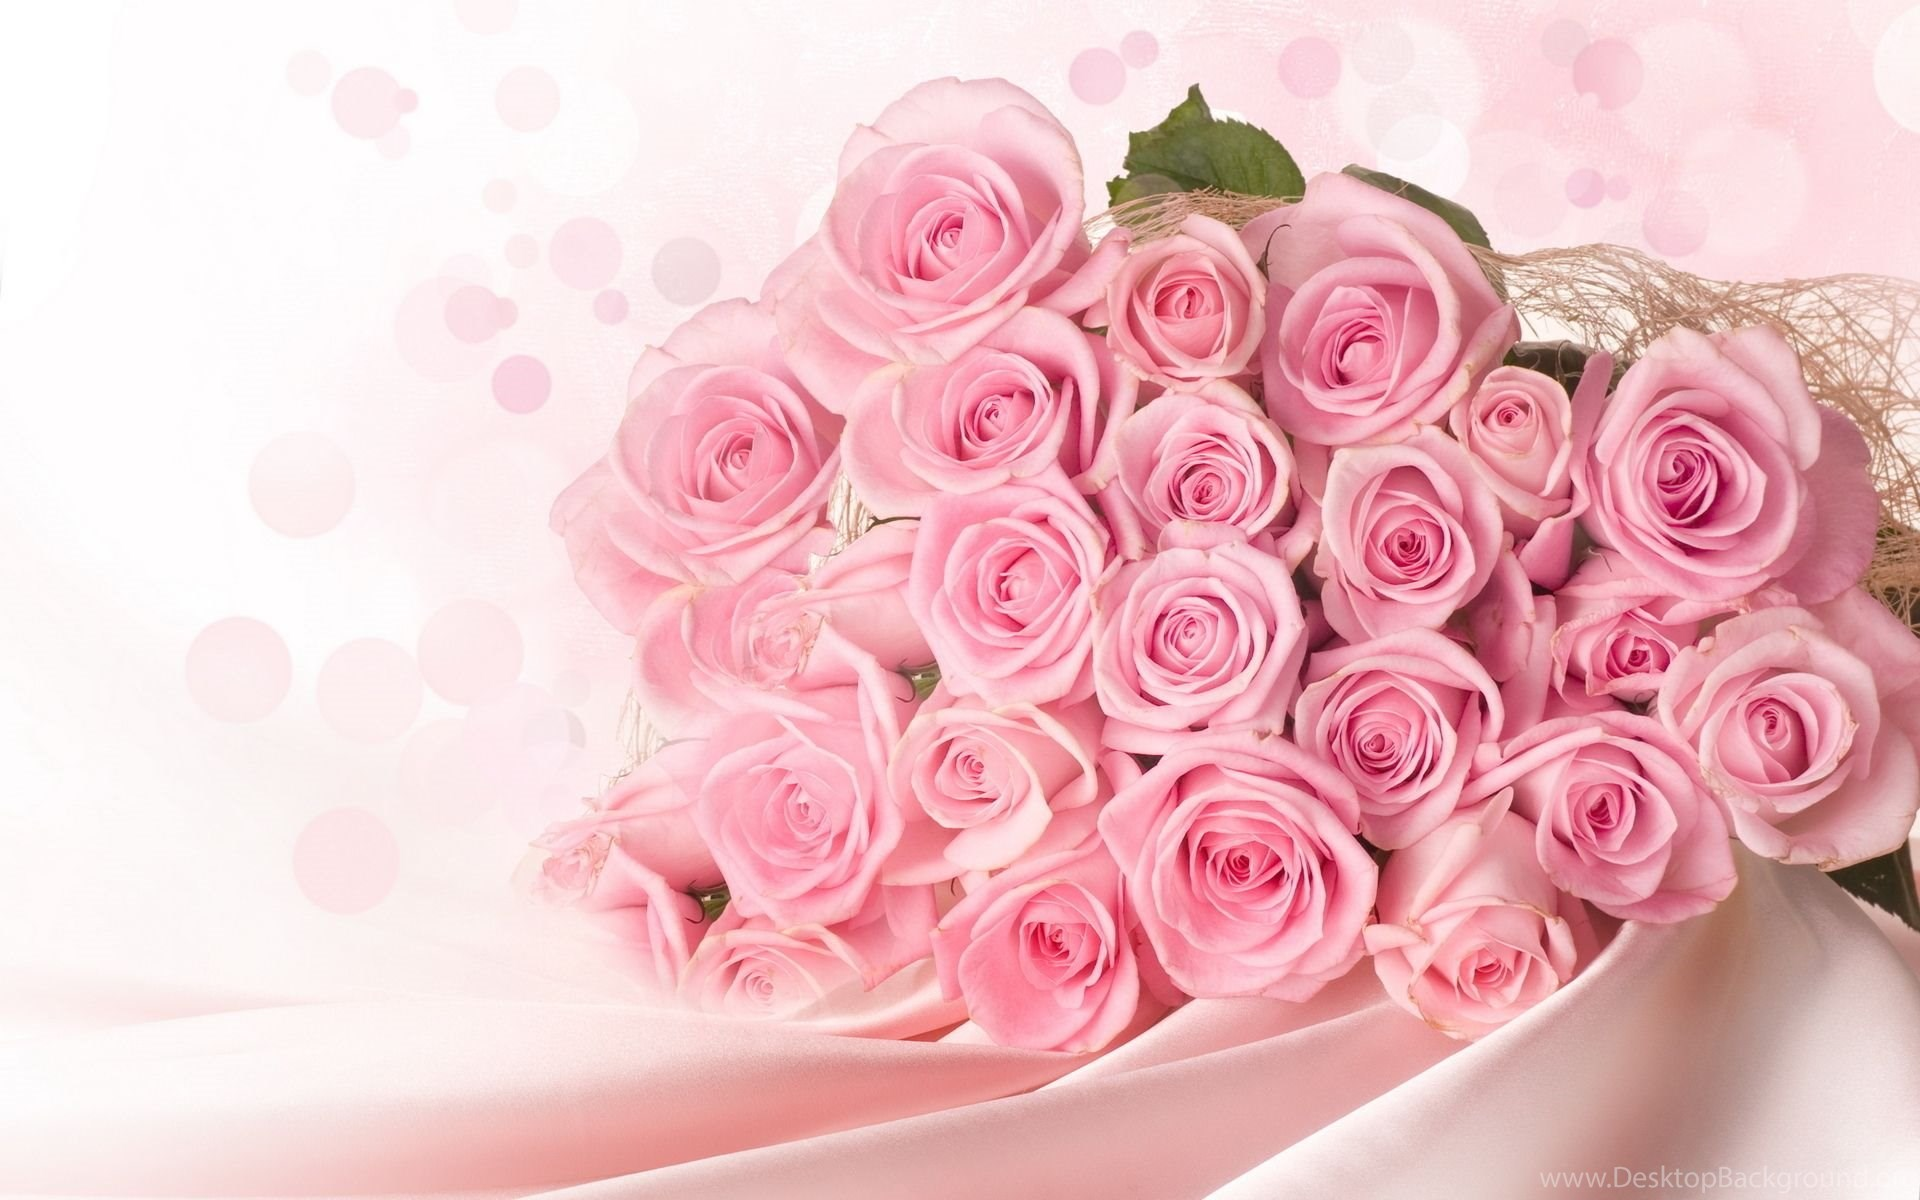 Pink Roses Wallpapers 11083 1920x1200 UMad Desktop Background